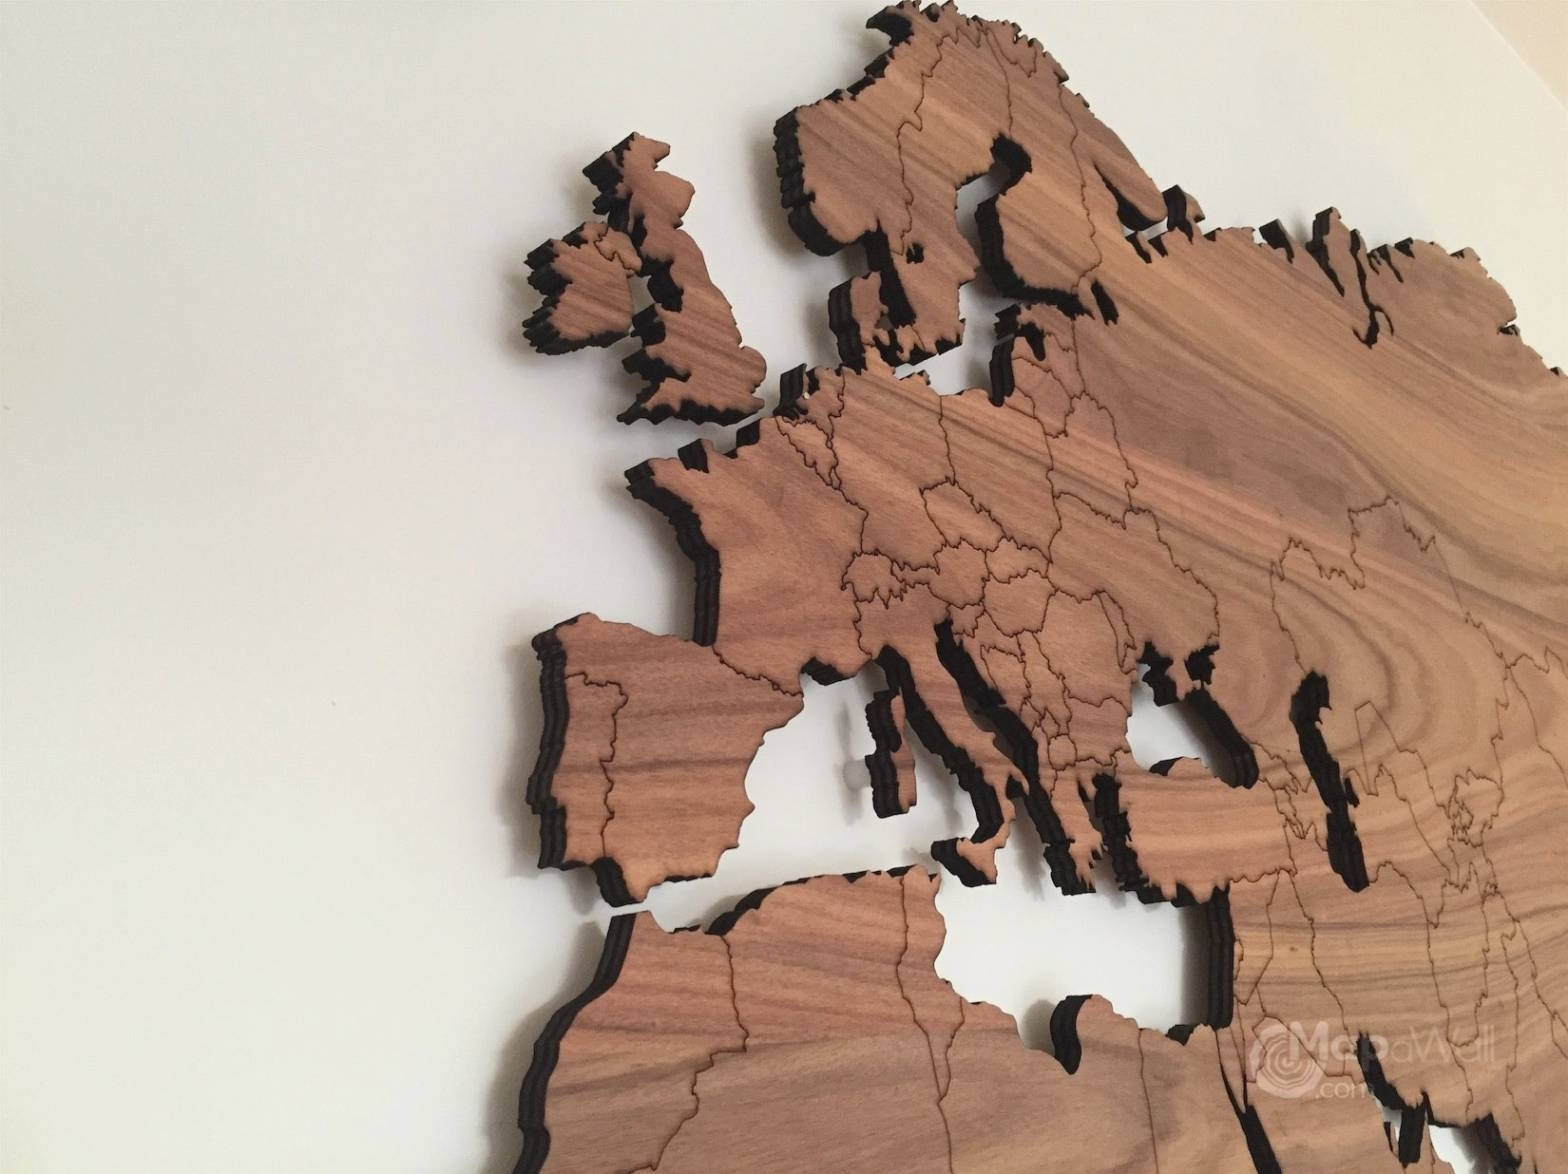 20 Ideas Of Map World Wall Art And Wooden – Furlongs With Most Recently Released Map Of The World Wall Art (View 3 of 20)